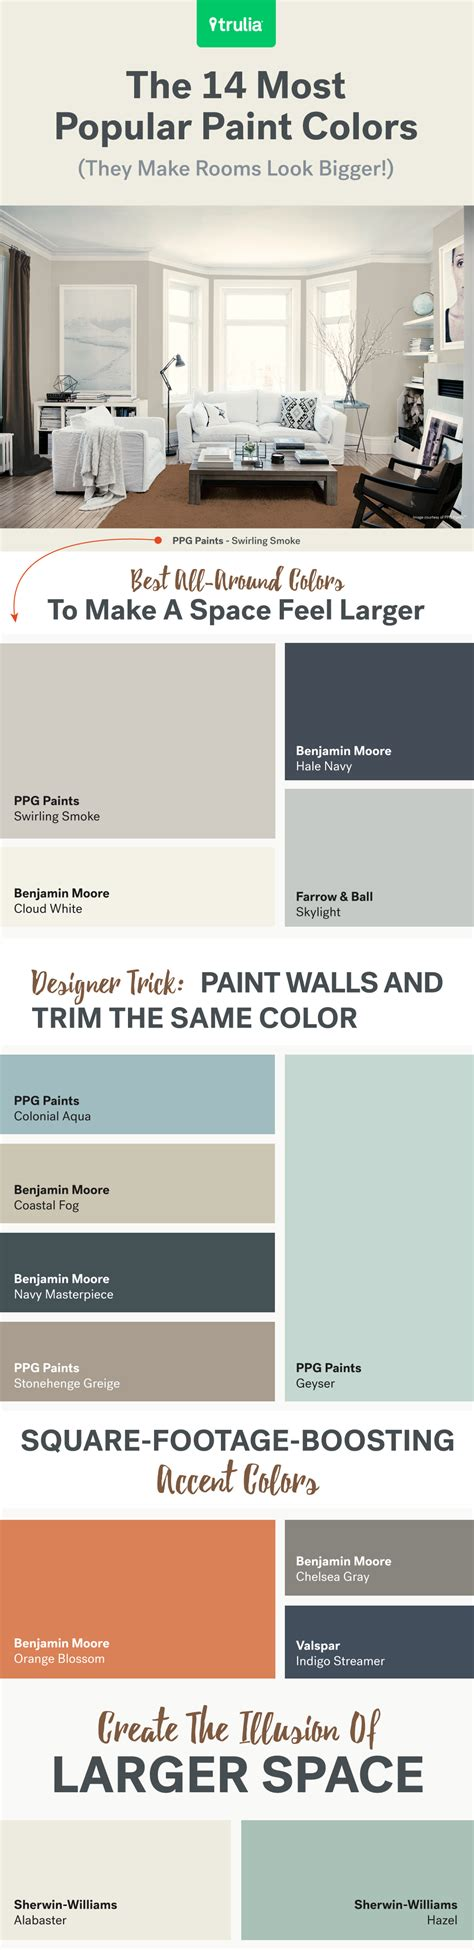 best paint colors 14 popular paint colors for small rooms life at home trulia blog